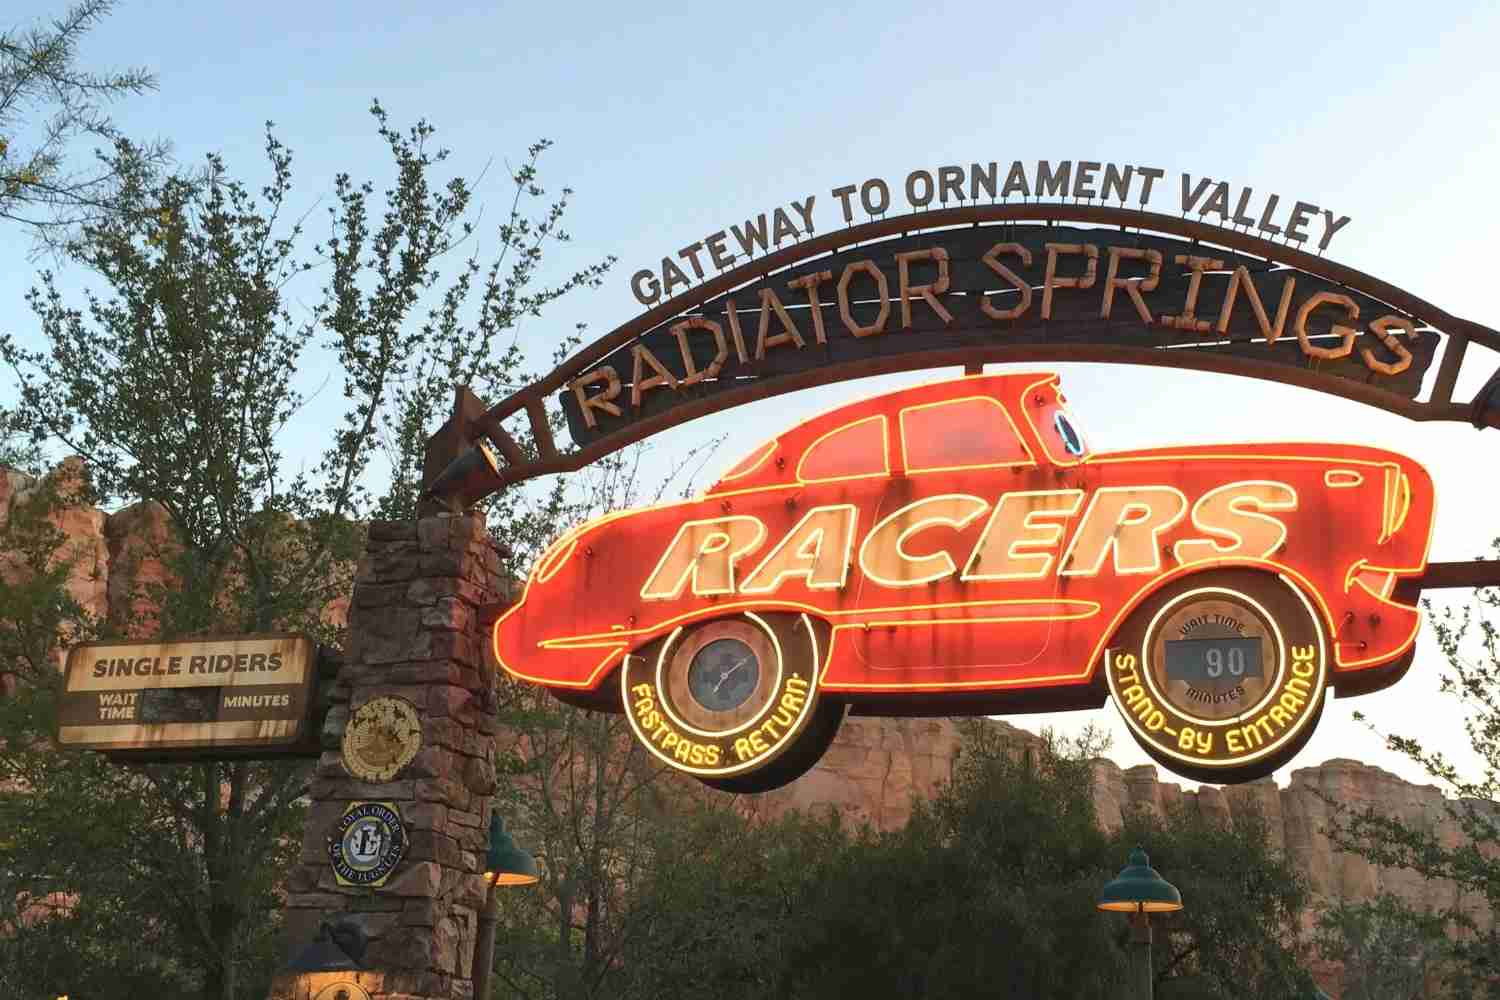 Disneyland Lines - Single Rider Line at Radiator Springs Racers